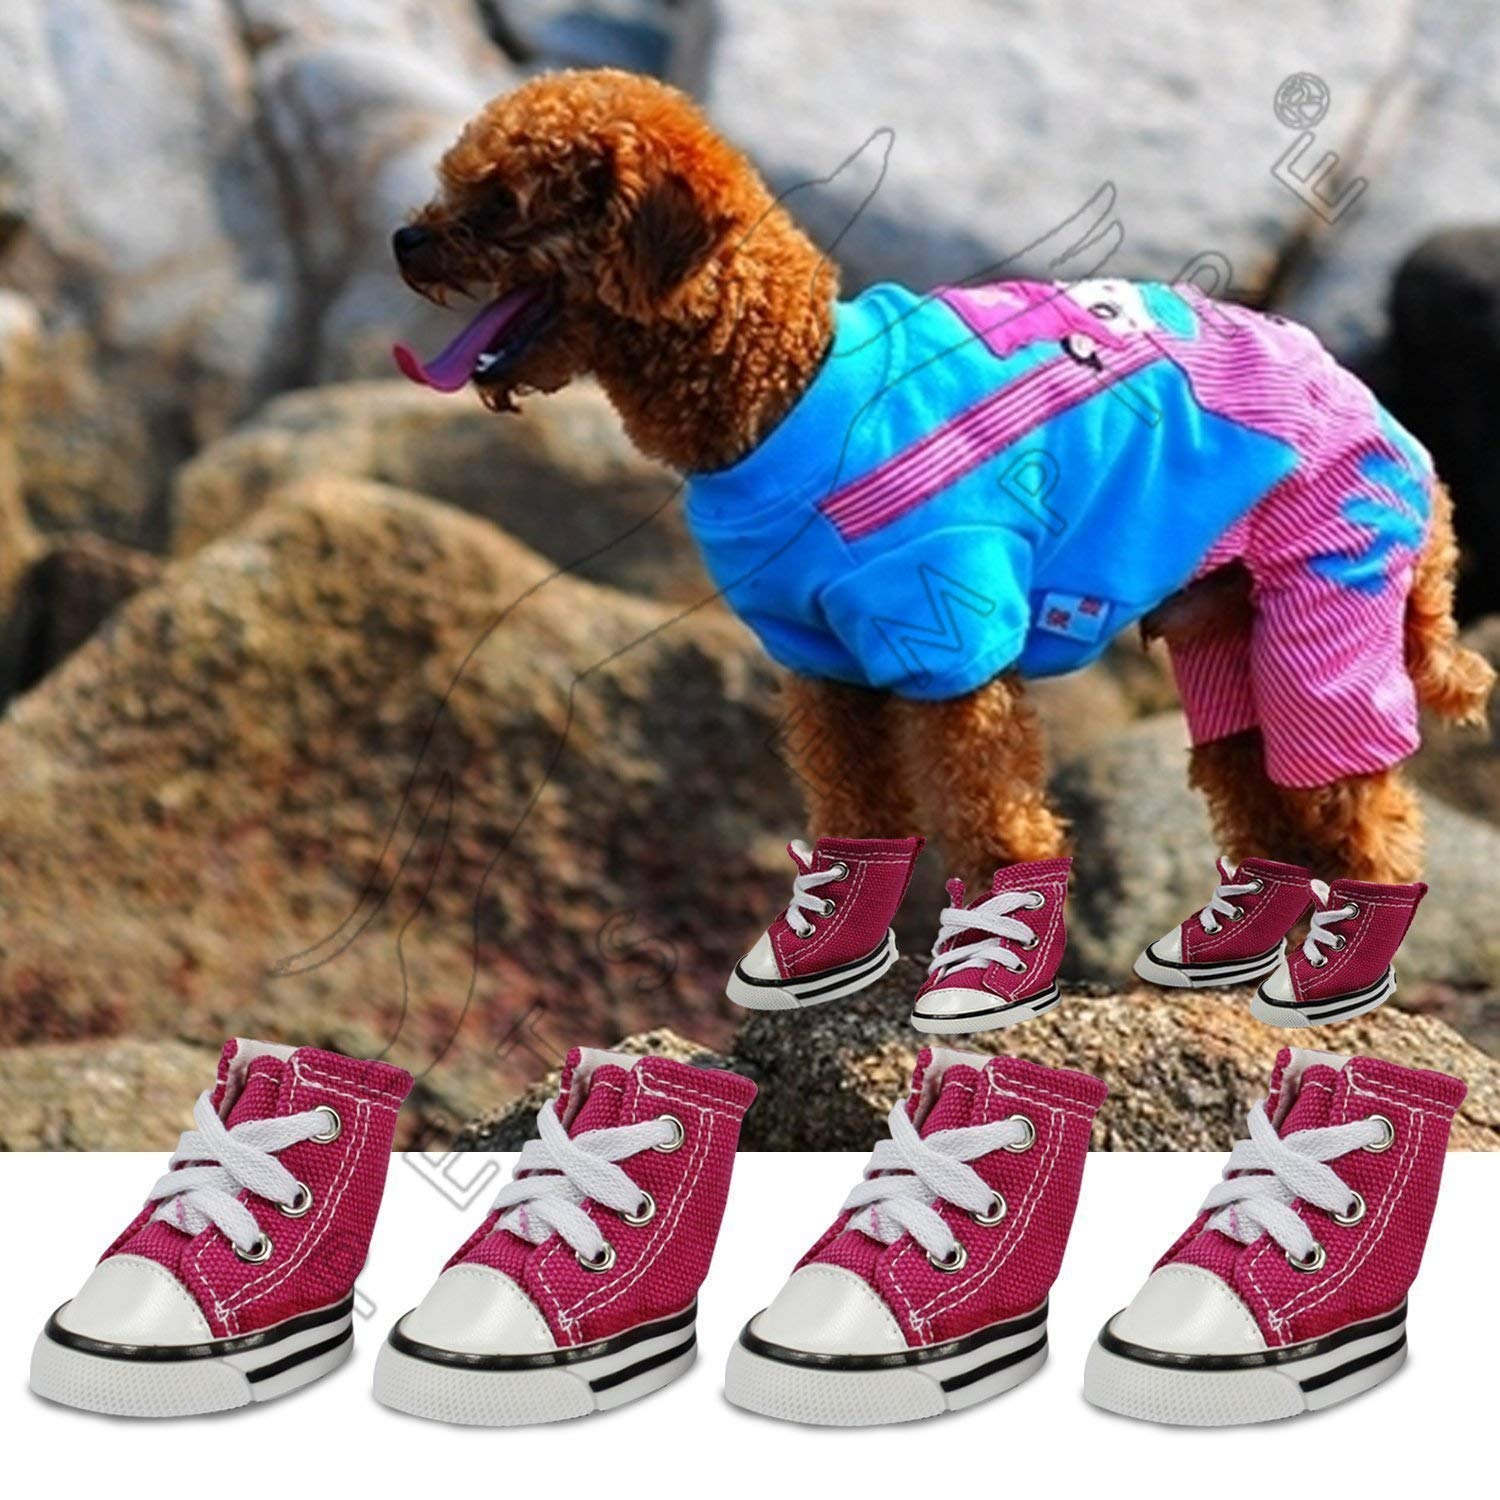 Pet Dog Cute Puppy Nonslip Canvas Sport Shoes Sneaker Boots Rubber Sole 4 Pcs 1 Set - Color May Vary (3# (LxW), 4.7cm X 3.6cm /(1.9inch * 1.4inch))